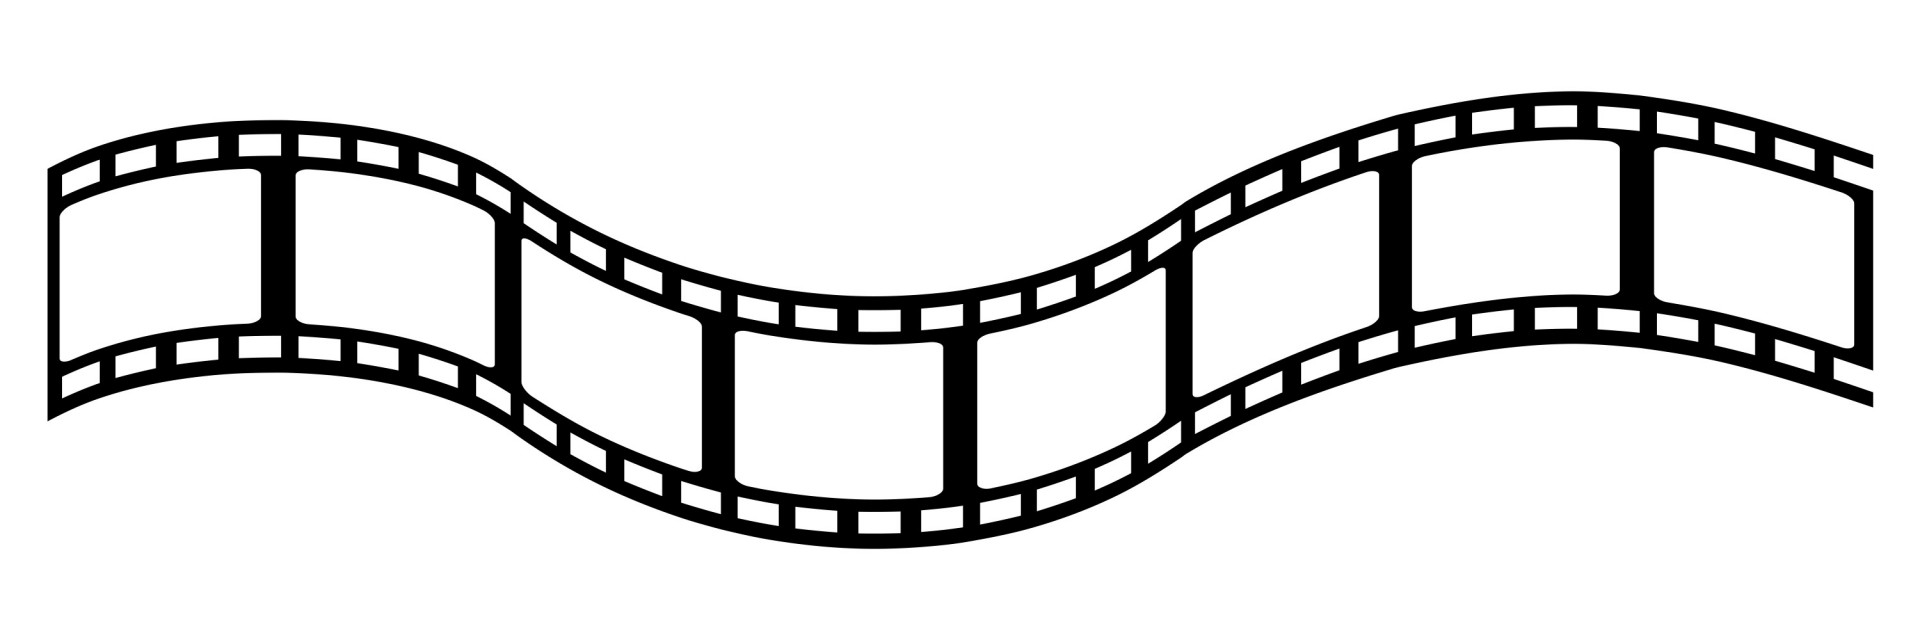 Film clipart film role. Images of strip free